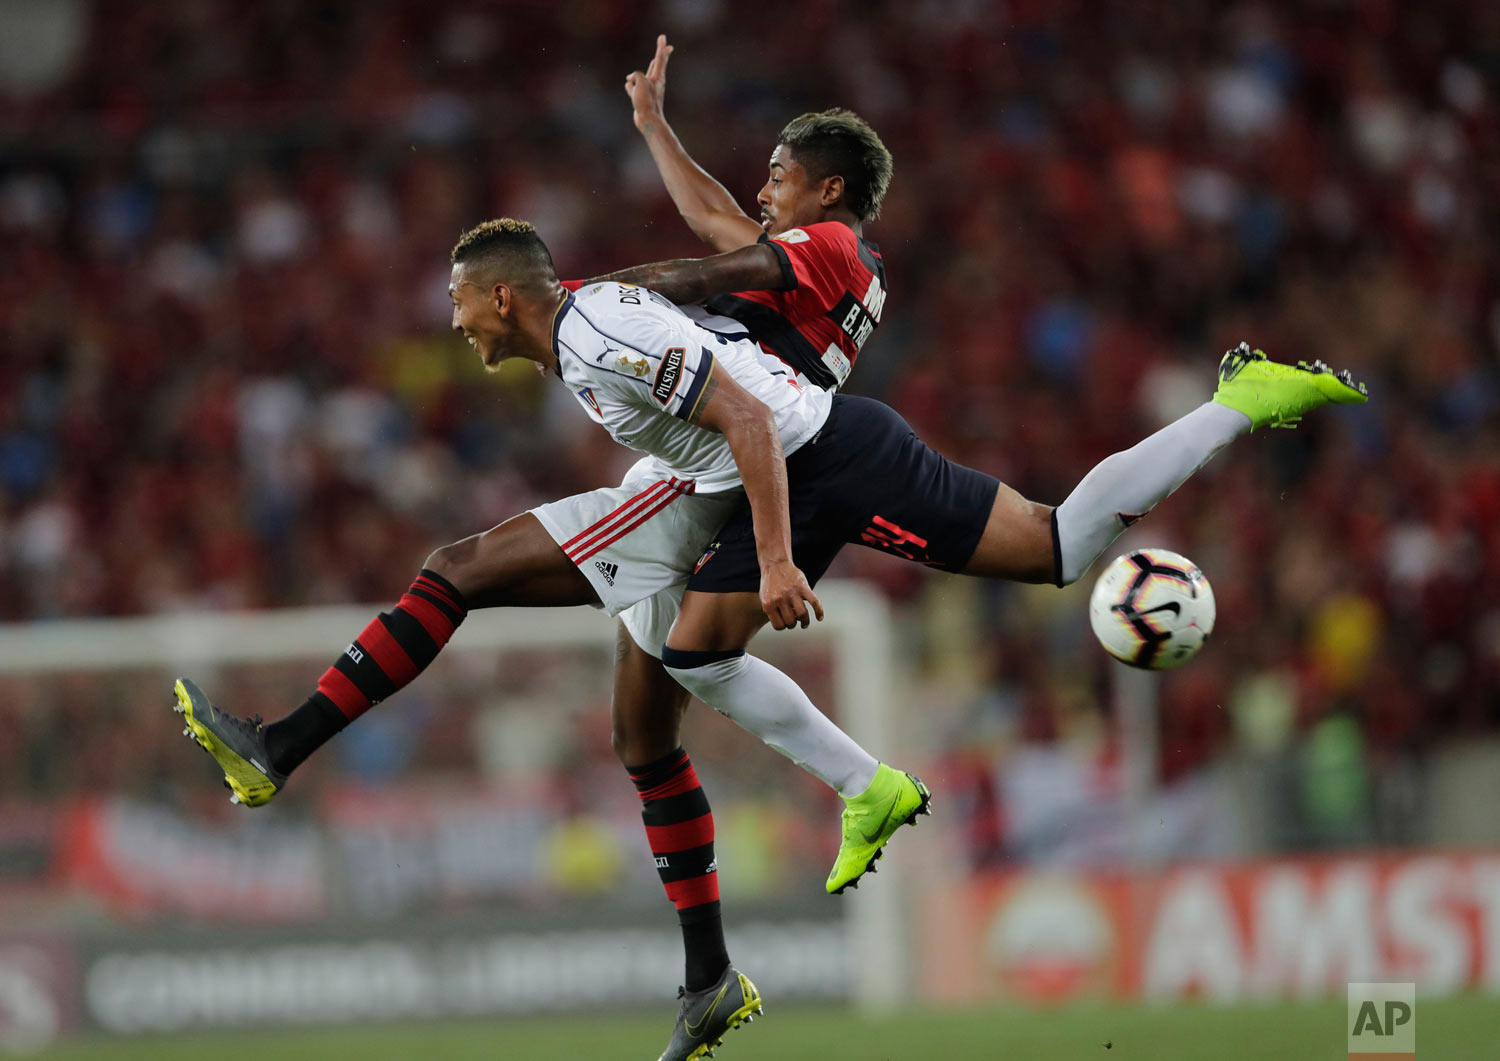 In this March 13, 2019 photo, Jose Quintero of Ecuador's Liga Deportiva Universitaria de Quito (white) fights for the ball with Bruno Henrique of Brazil's Flamengo during a Copa Libertadores soccer match at Maracana stadium in Rio de Janeiro, Brazil. (AP Photo/Silvia Izquierdo)